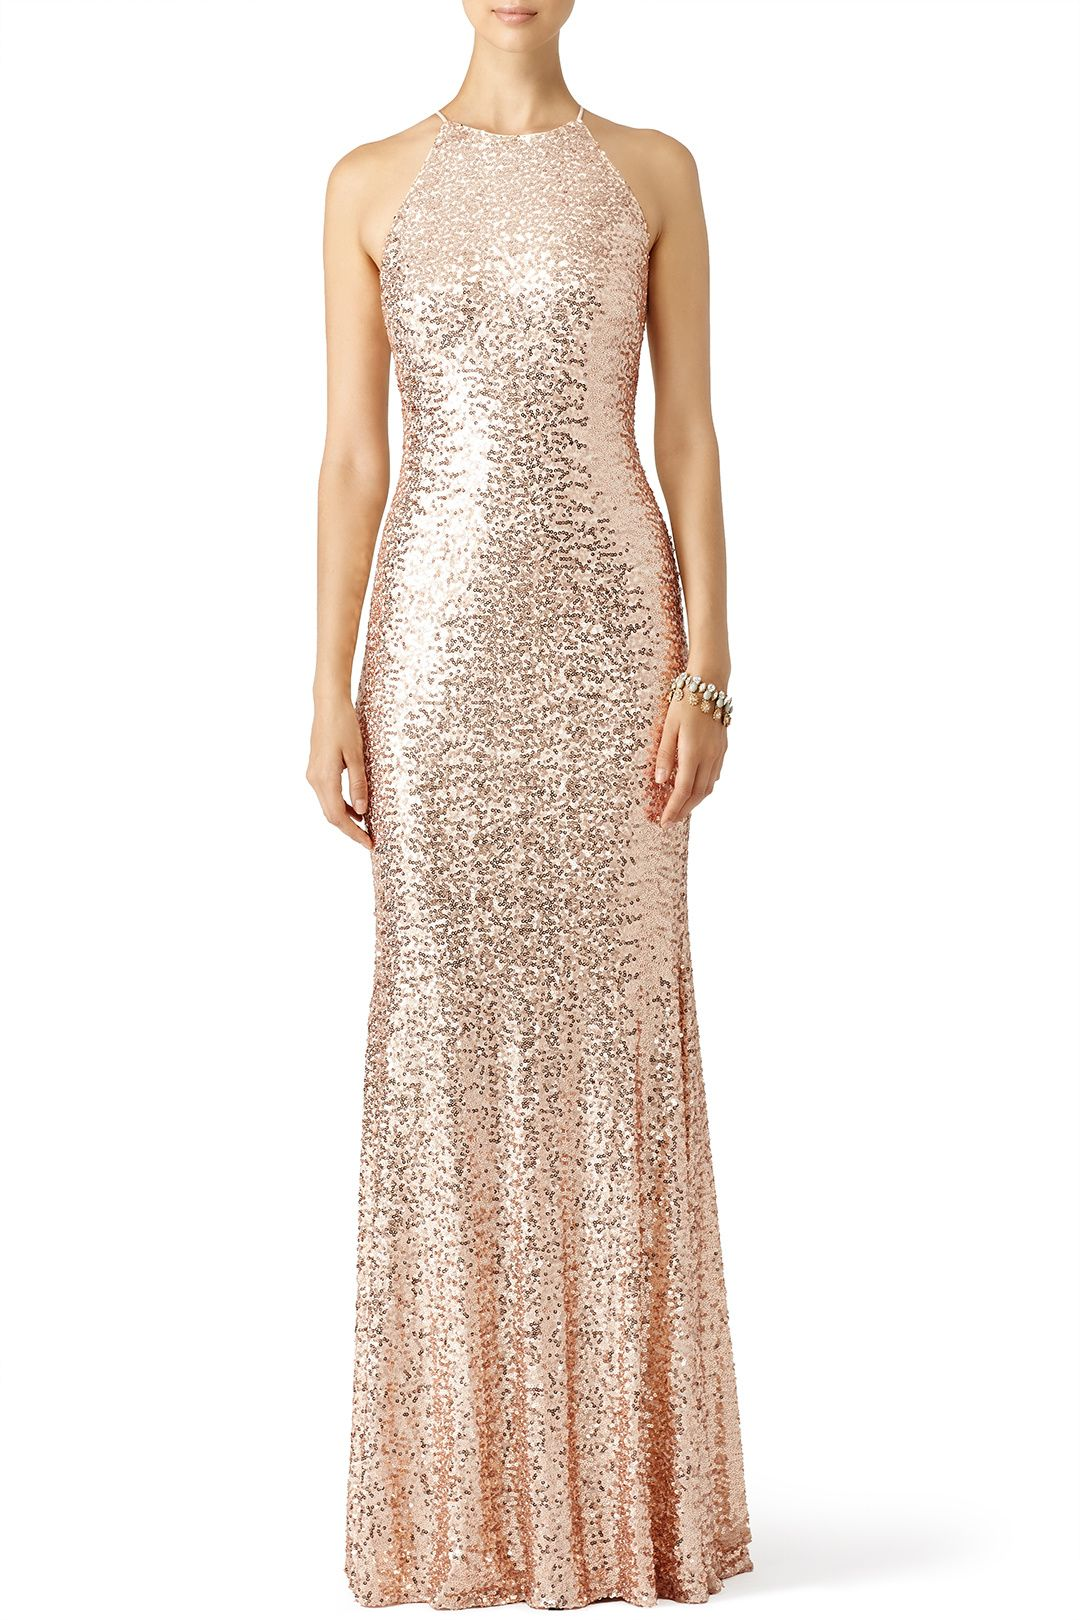 Rent blush sequin racerback gown by badgley mischka for only at